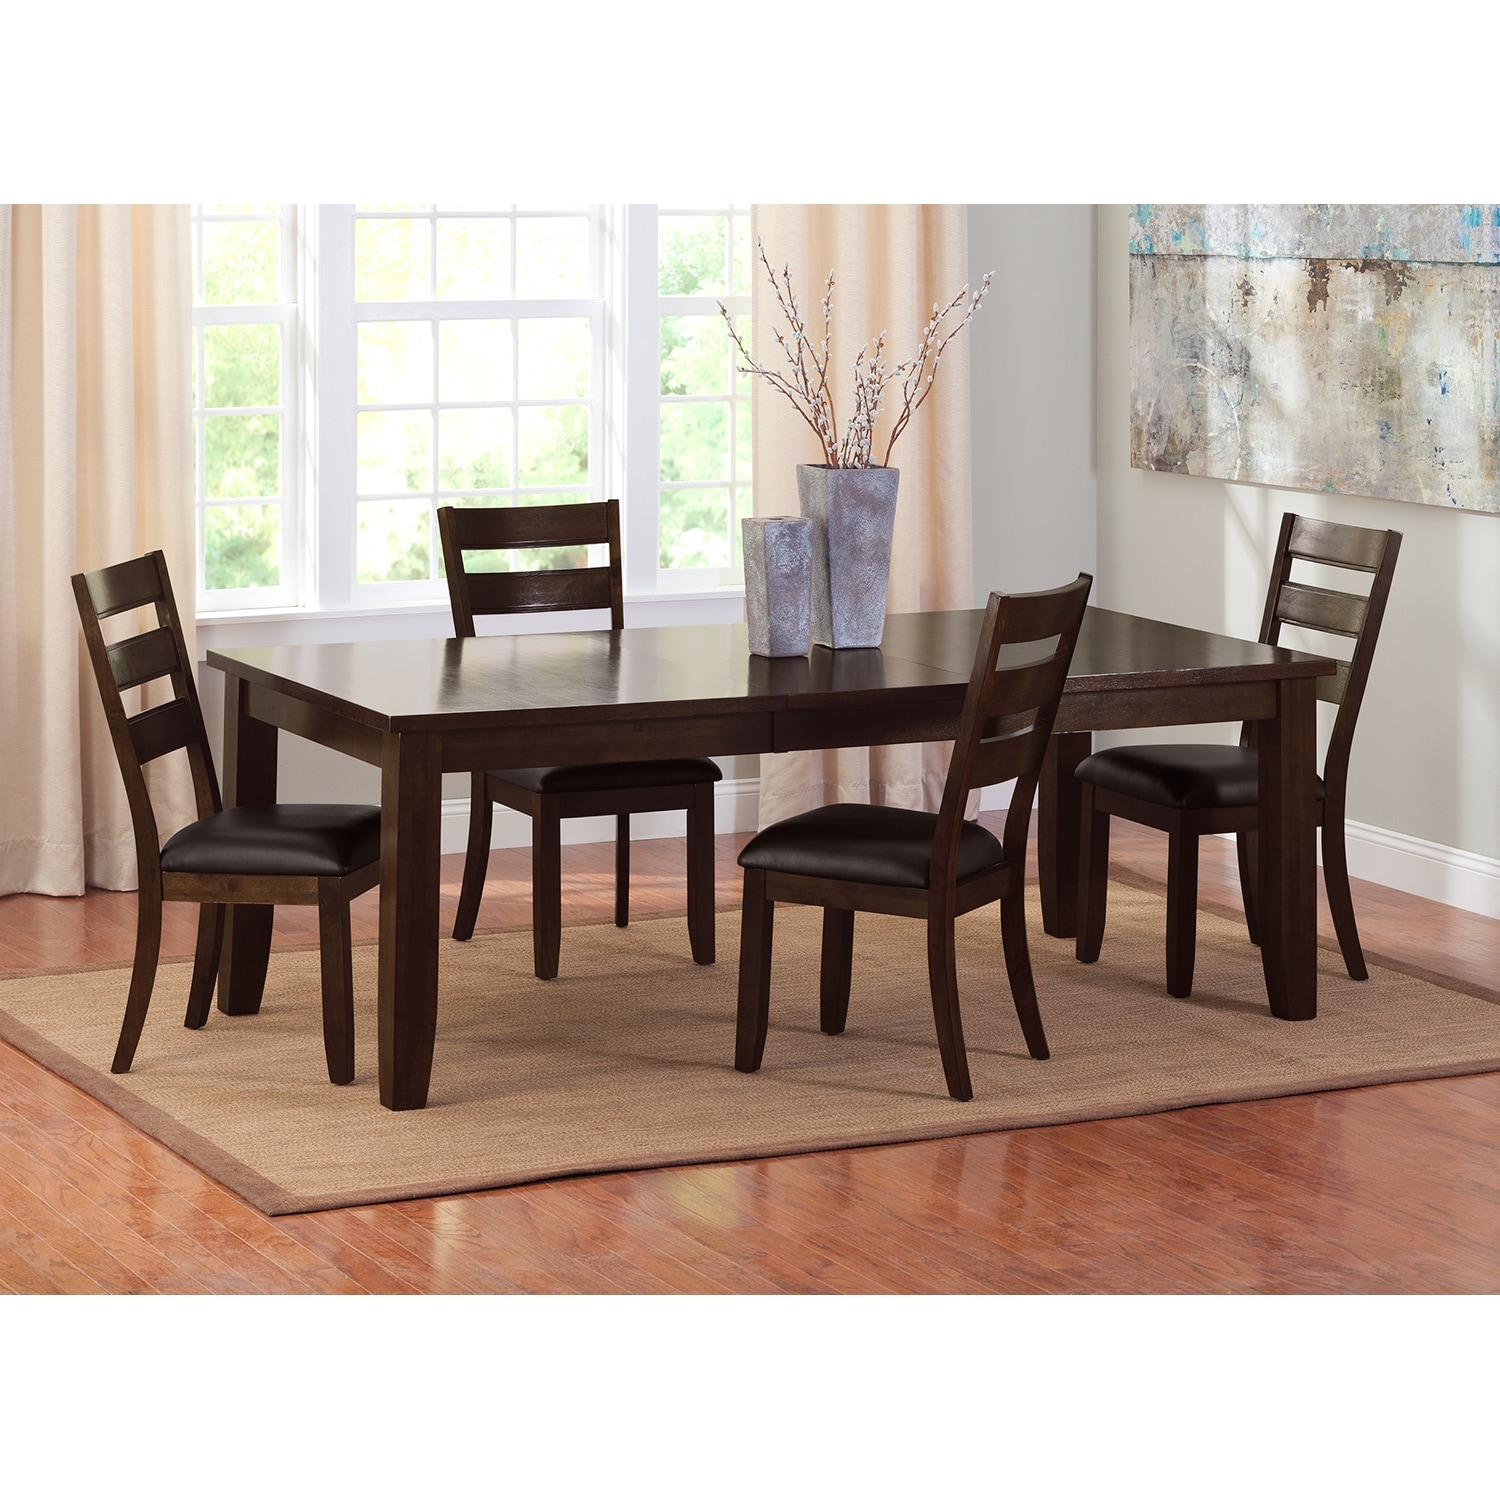 abaco dining room table value city furniture